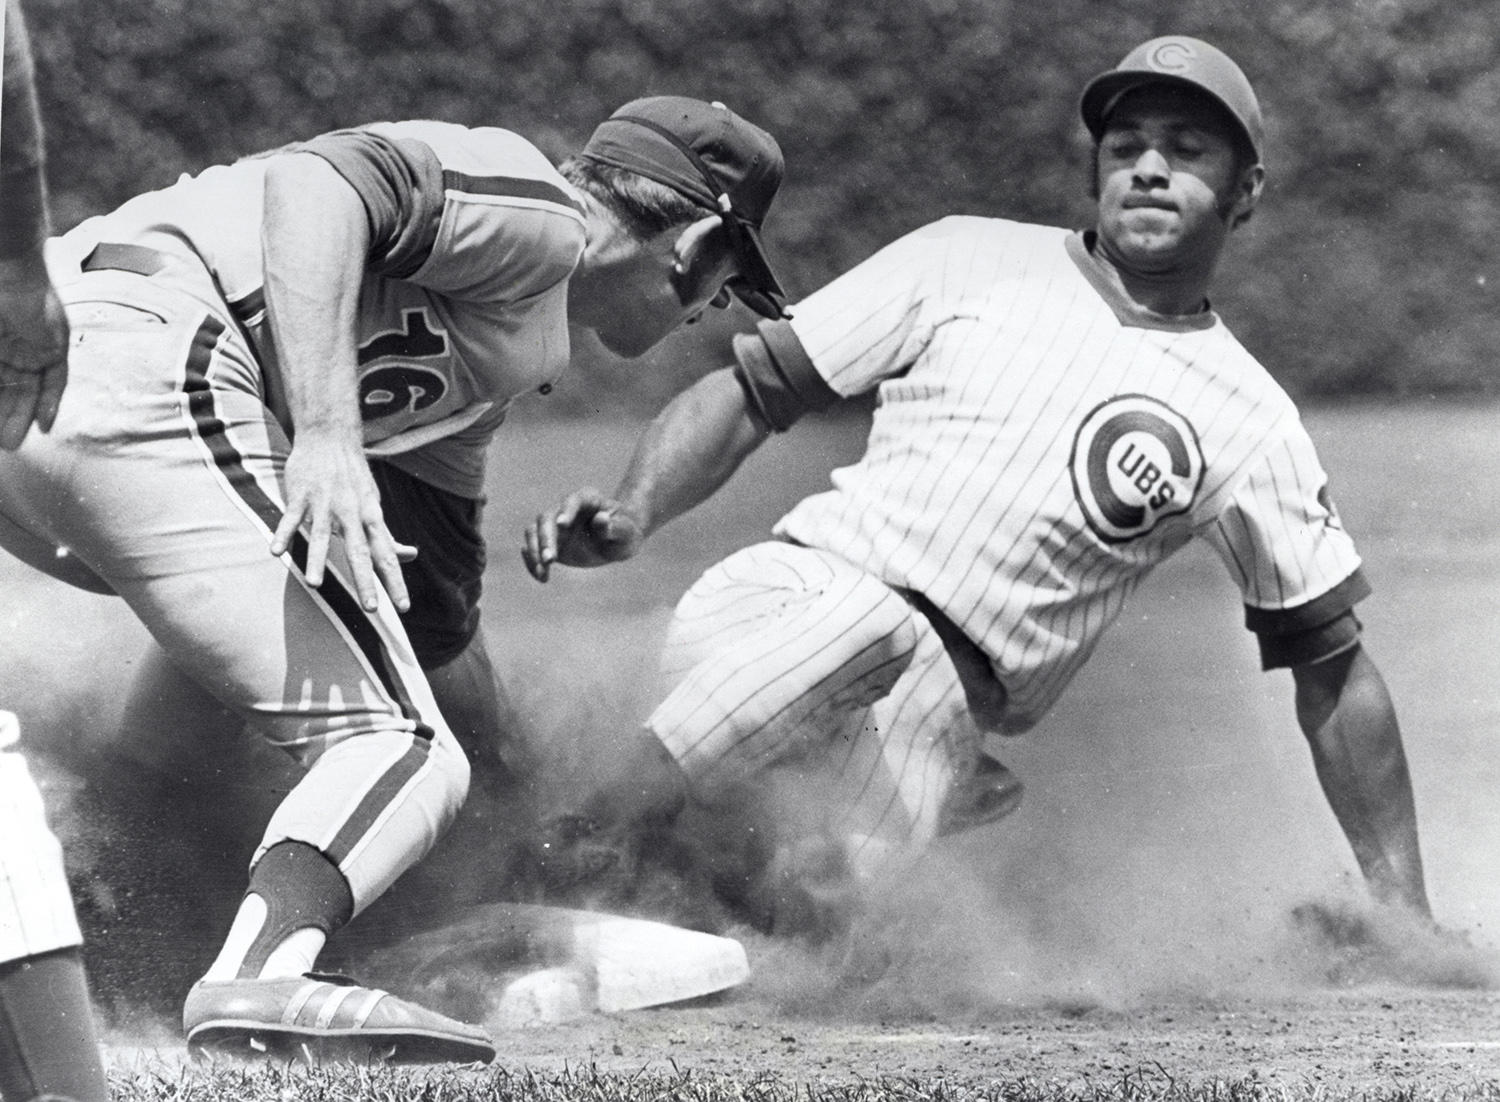 Billy Williams, pictured above sliding into third base, led the National League in total bases three times (1968, 1970 and 1972) and in extra base hits three times (1965, 1968 and 1972). (National Baseball Hall of Fame and Museum)